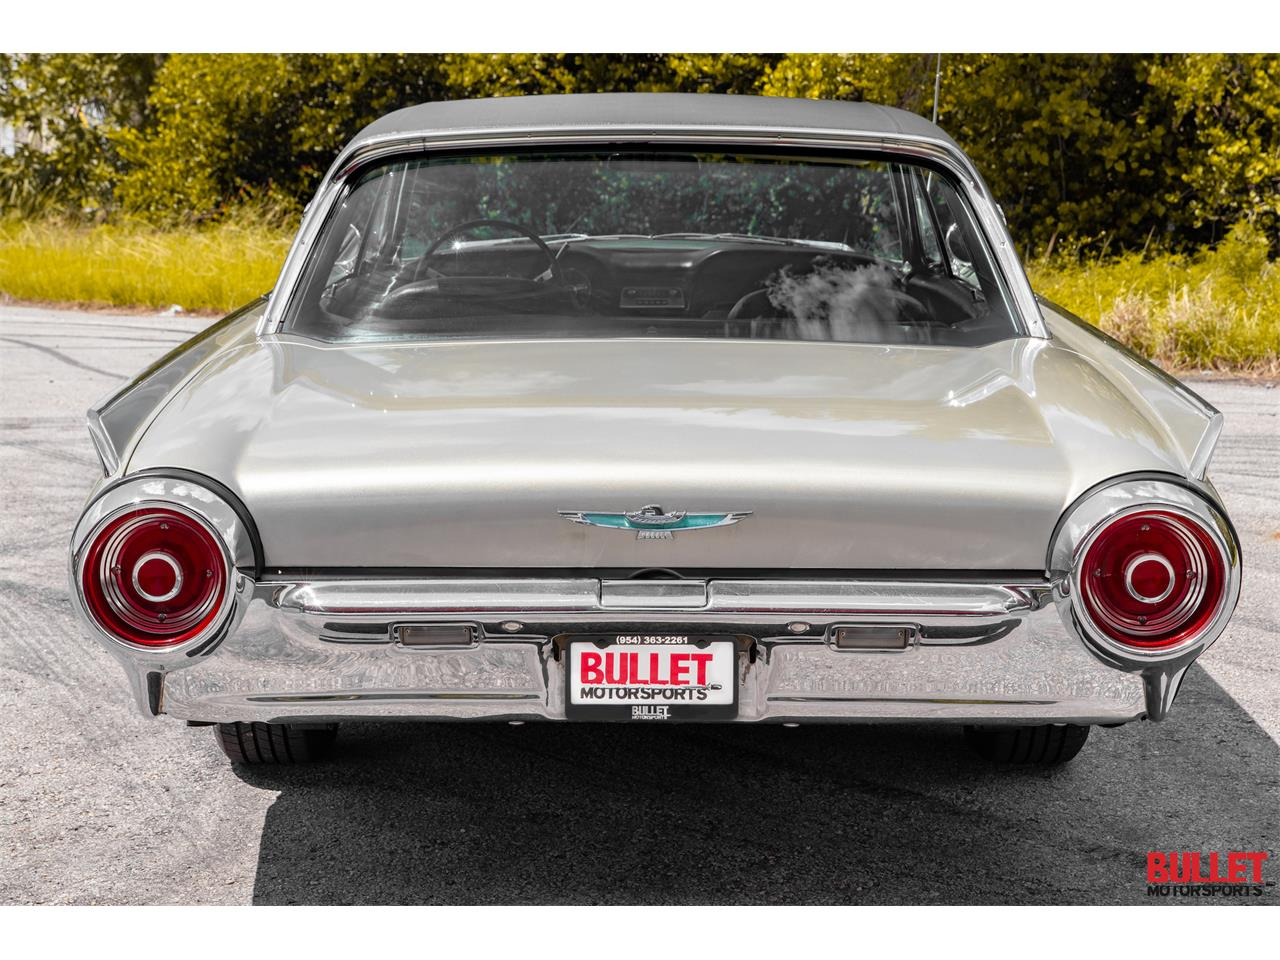 Large Picture of '62 Thunderbird located in Fort Lauderdale Florida - $18,450.00 - PSKN